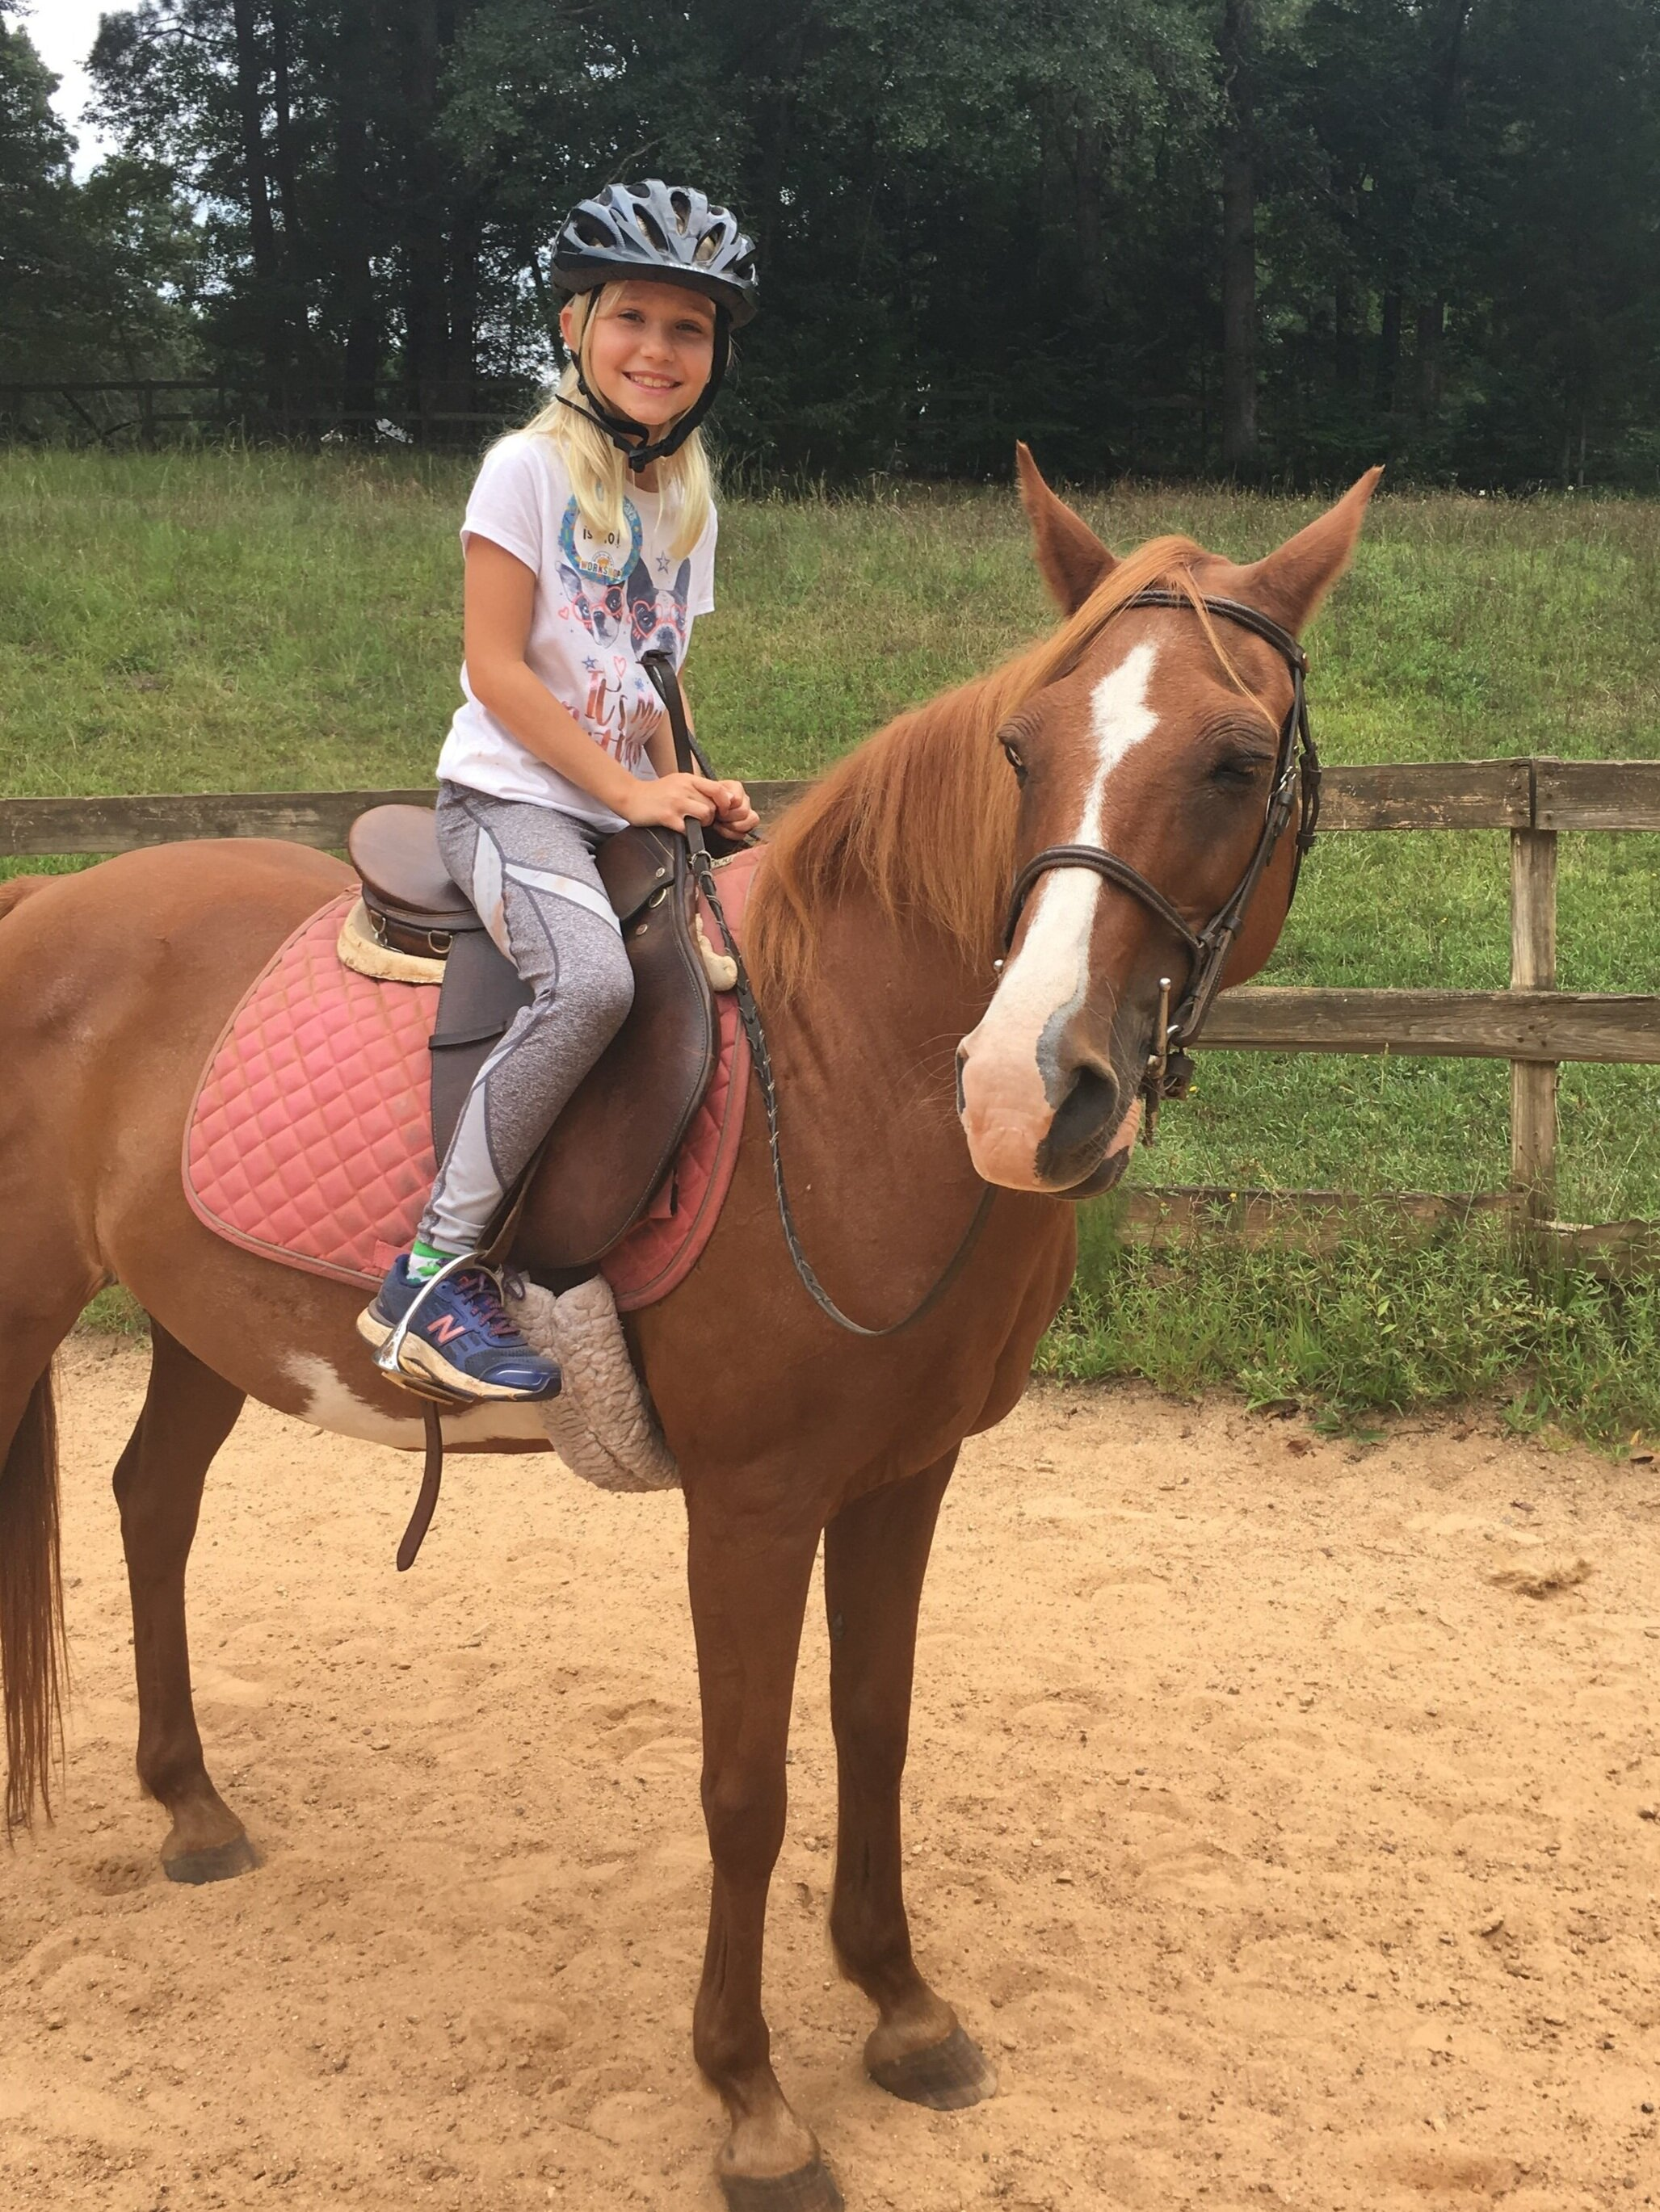 LESSONS - Grove Station Farms offers hunt seat riding instruction for beginners to advanced students.